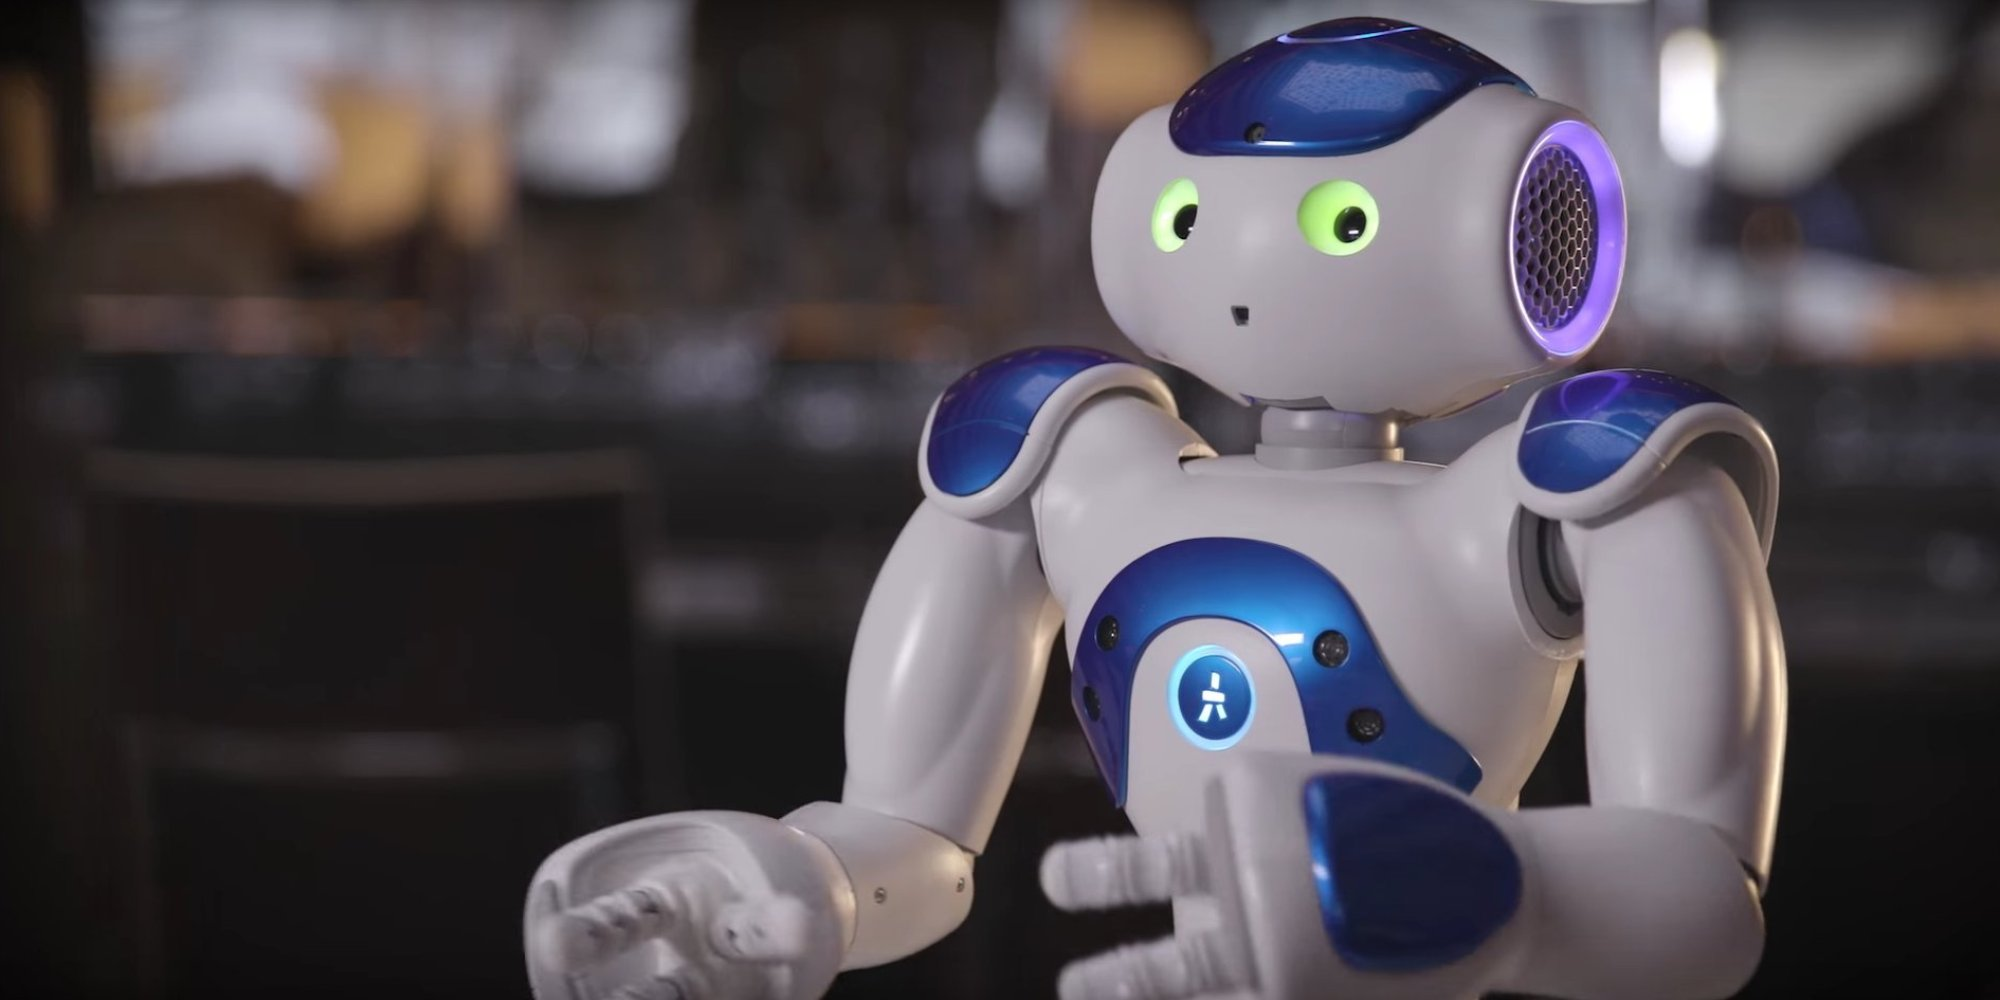 Image: Connie, IBM Watson-enabled robot